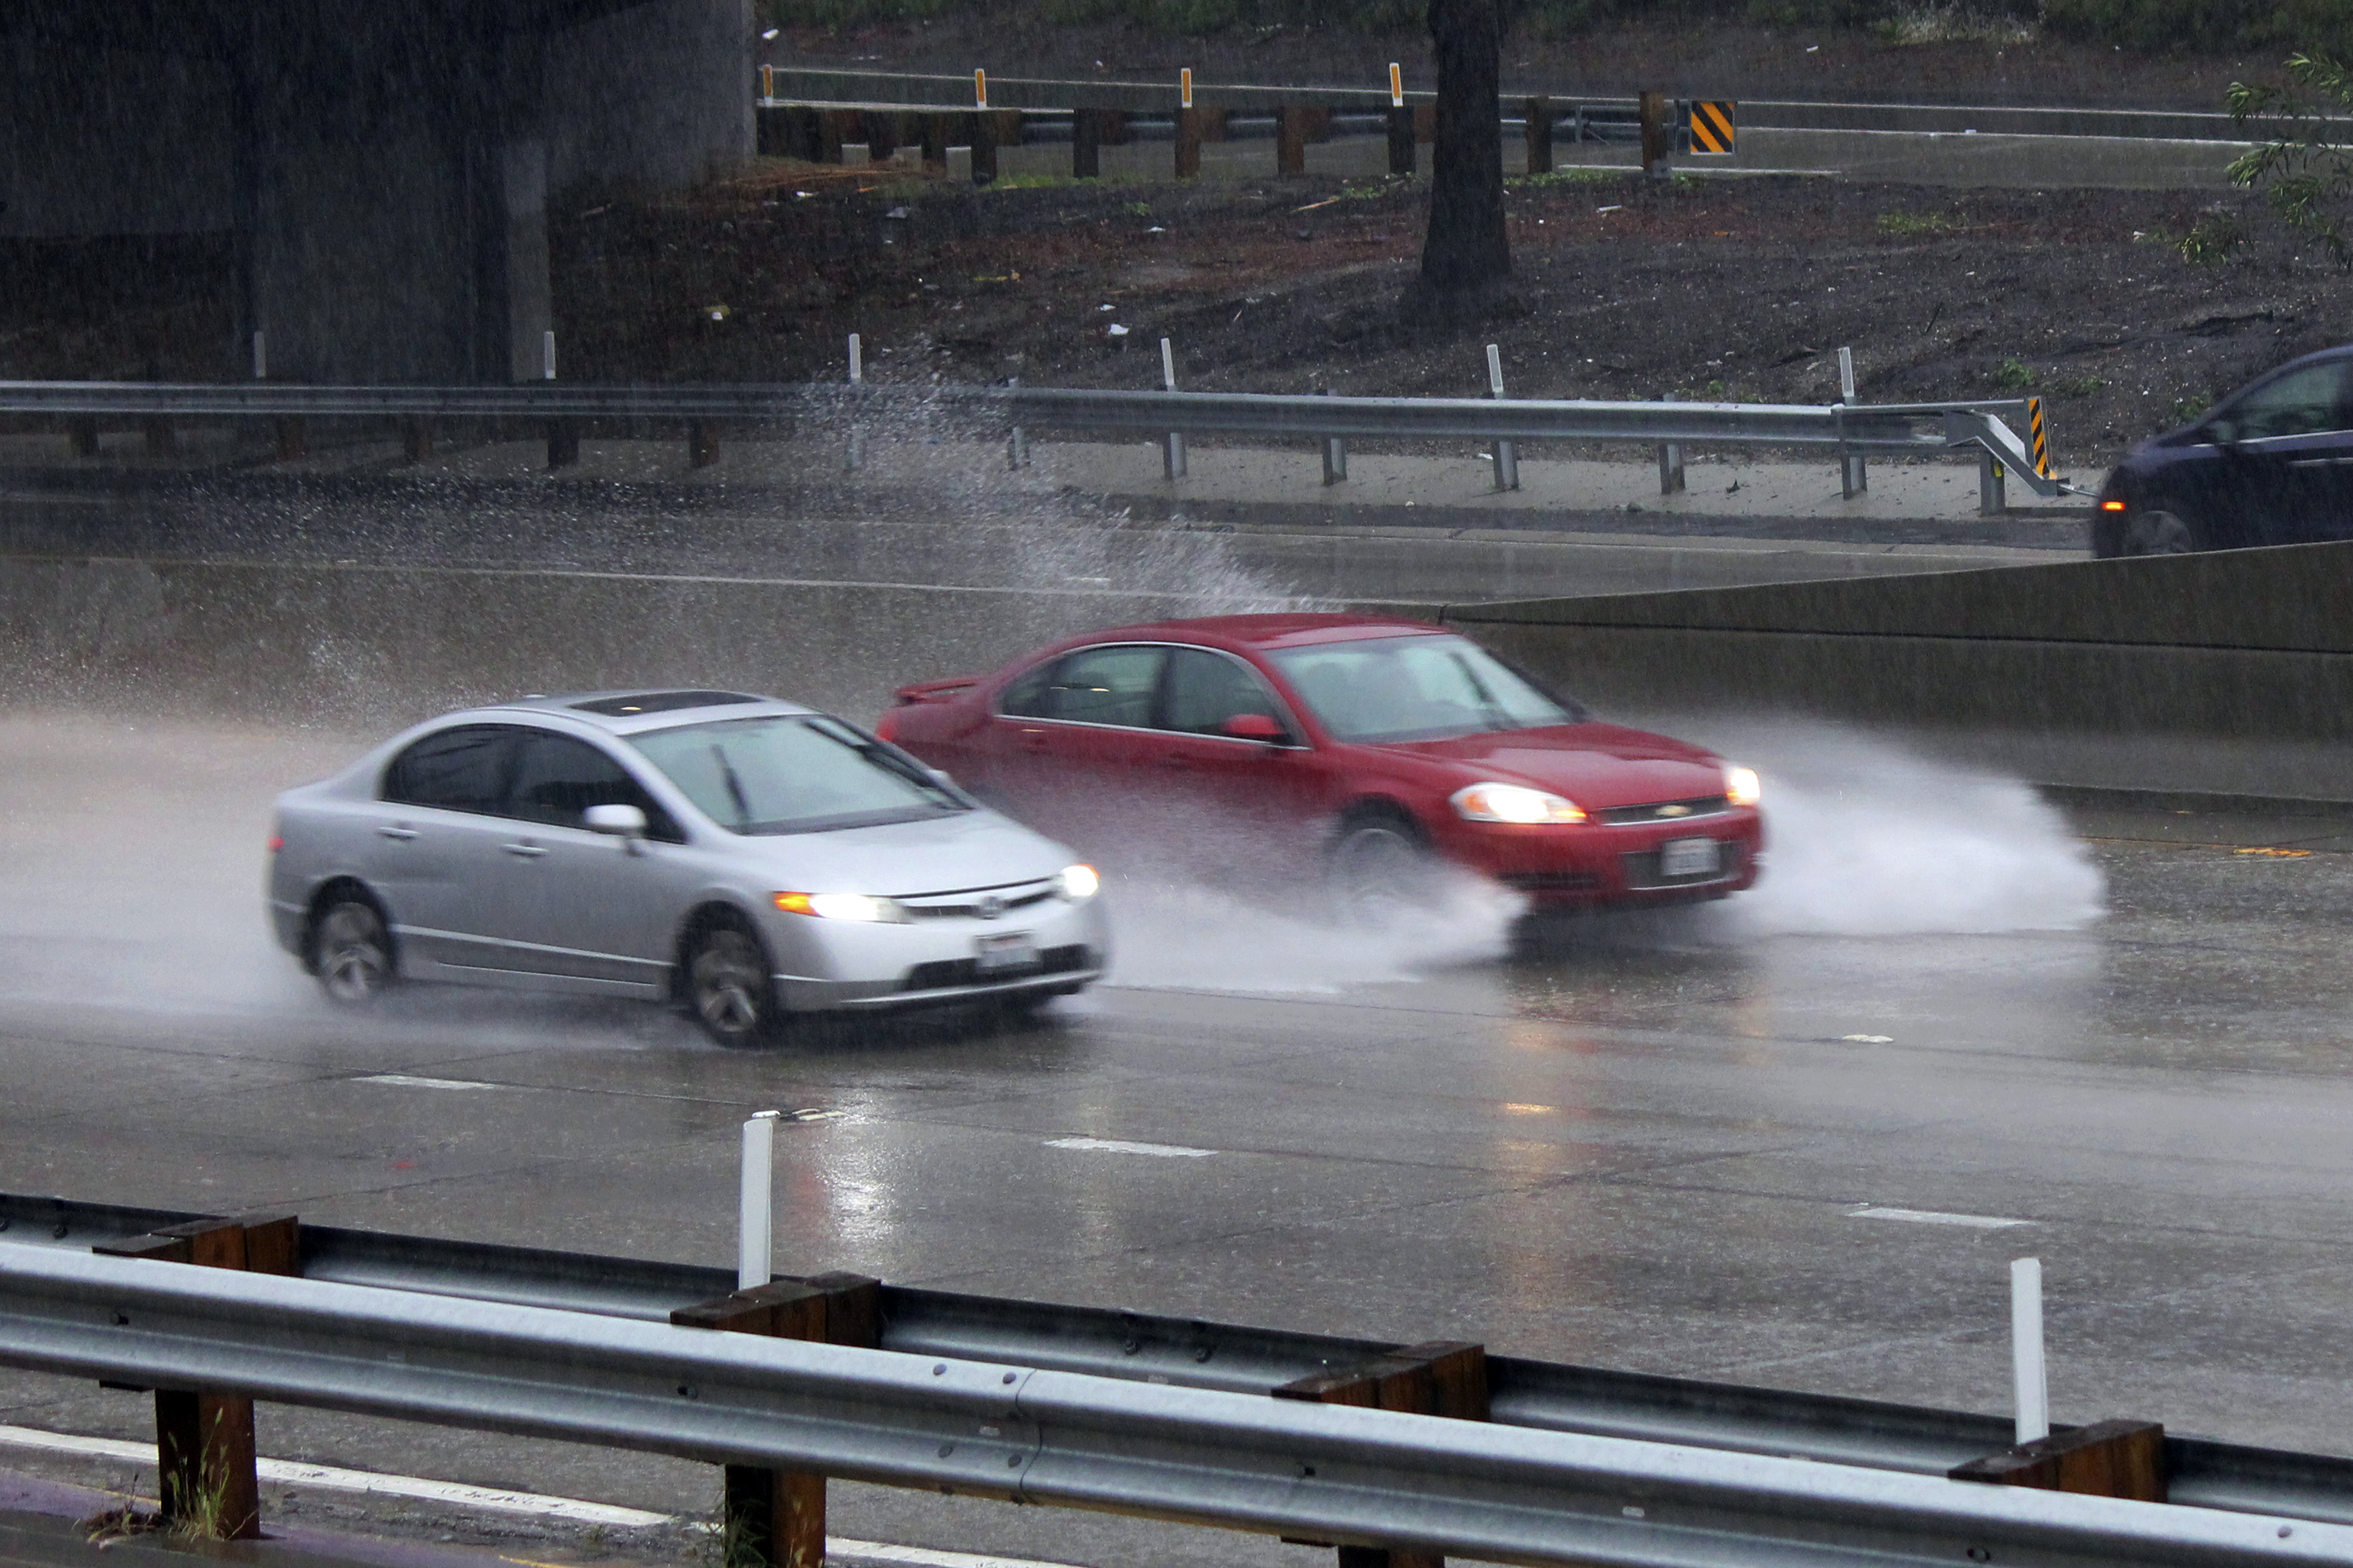 Cars on the northbound Harbor Freeway (I-110) in downtown Los Angeles plow through deep water during a torrential downpour Monday, April 6, 2020.